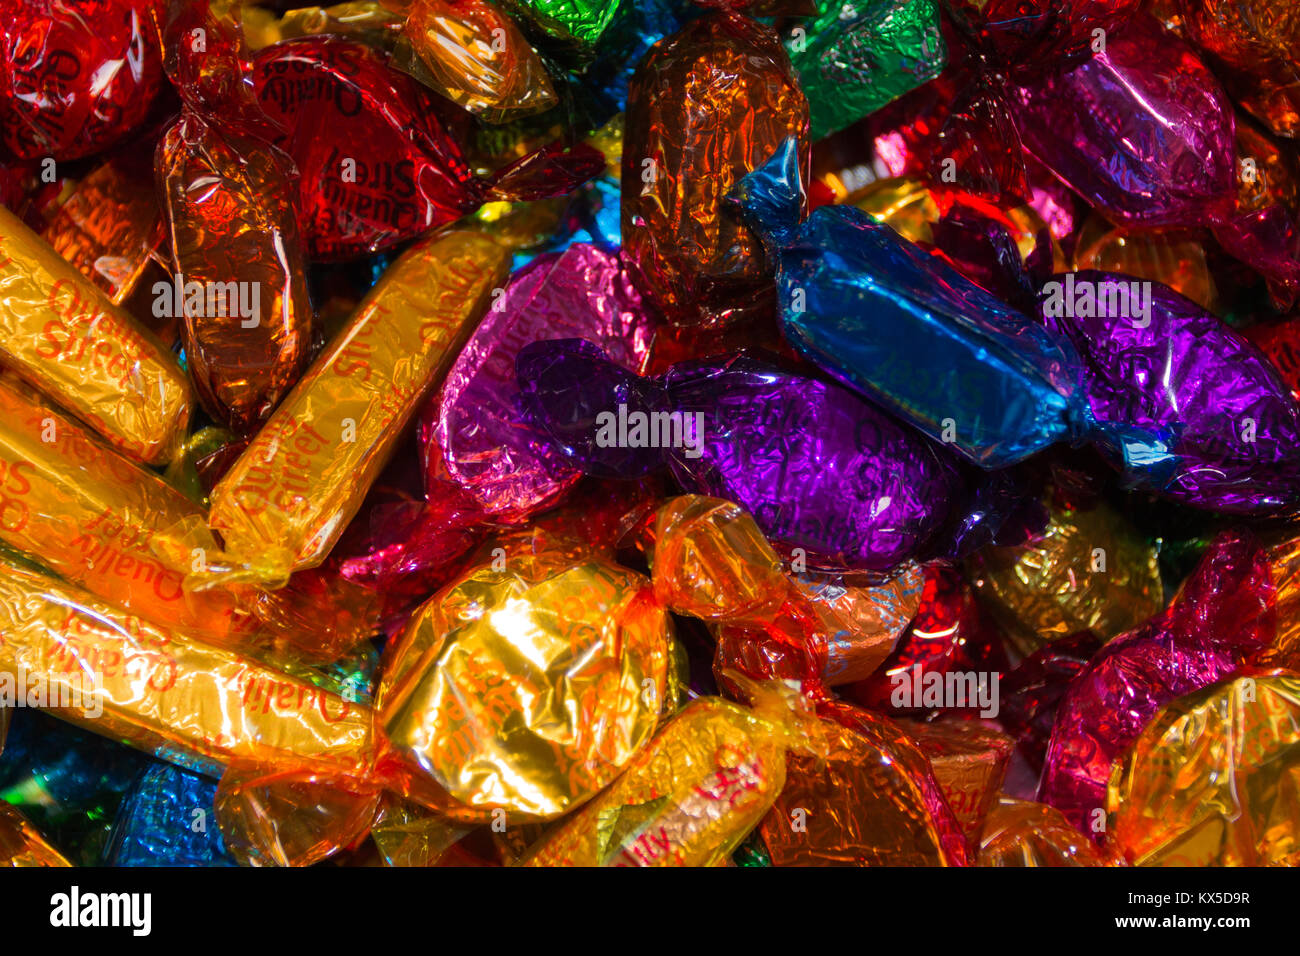 QUALITY STREET: Colourful and bright sweet wrappers - Stock Image